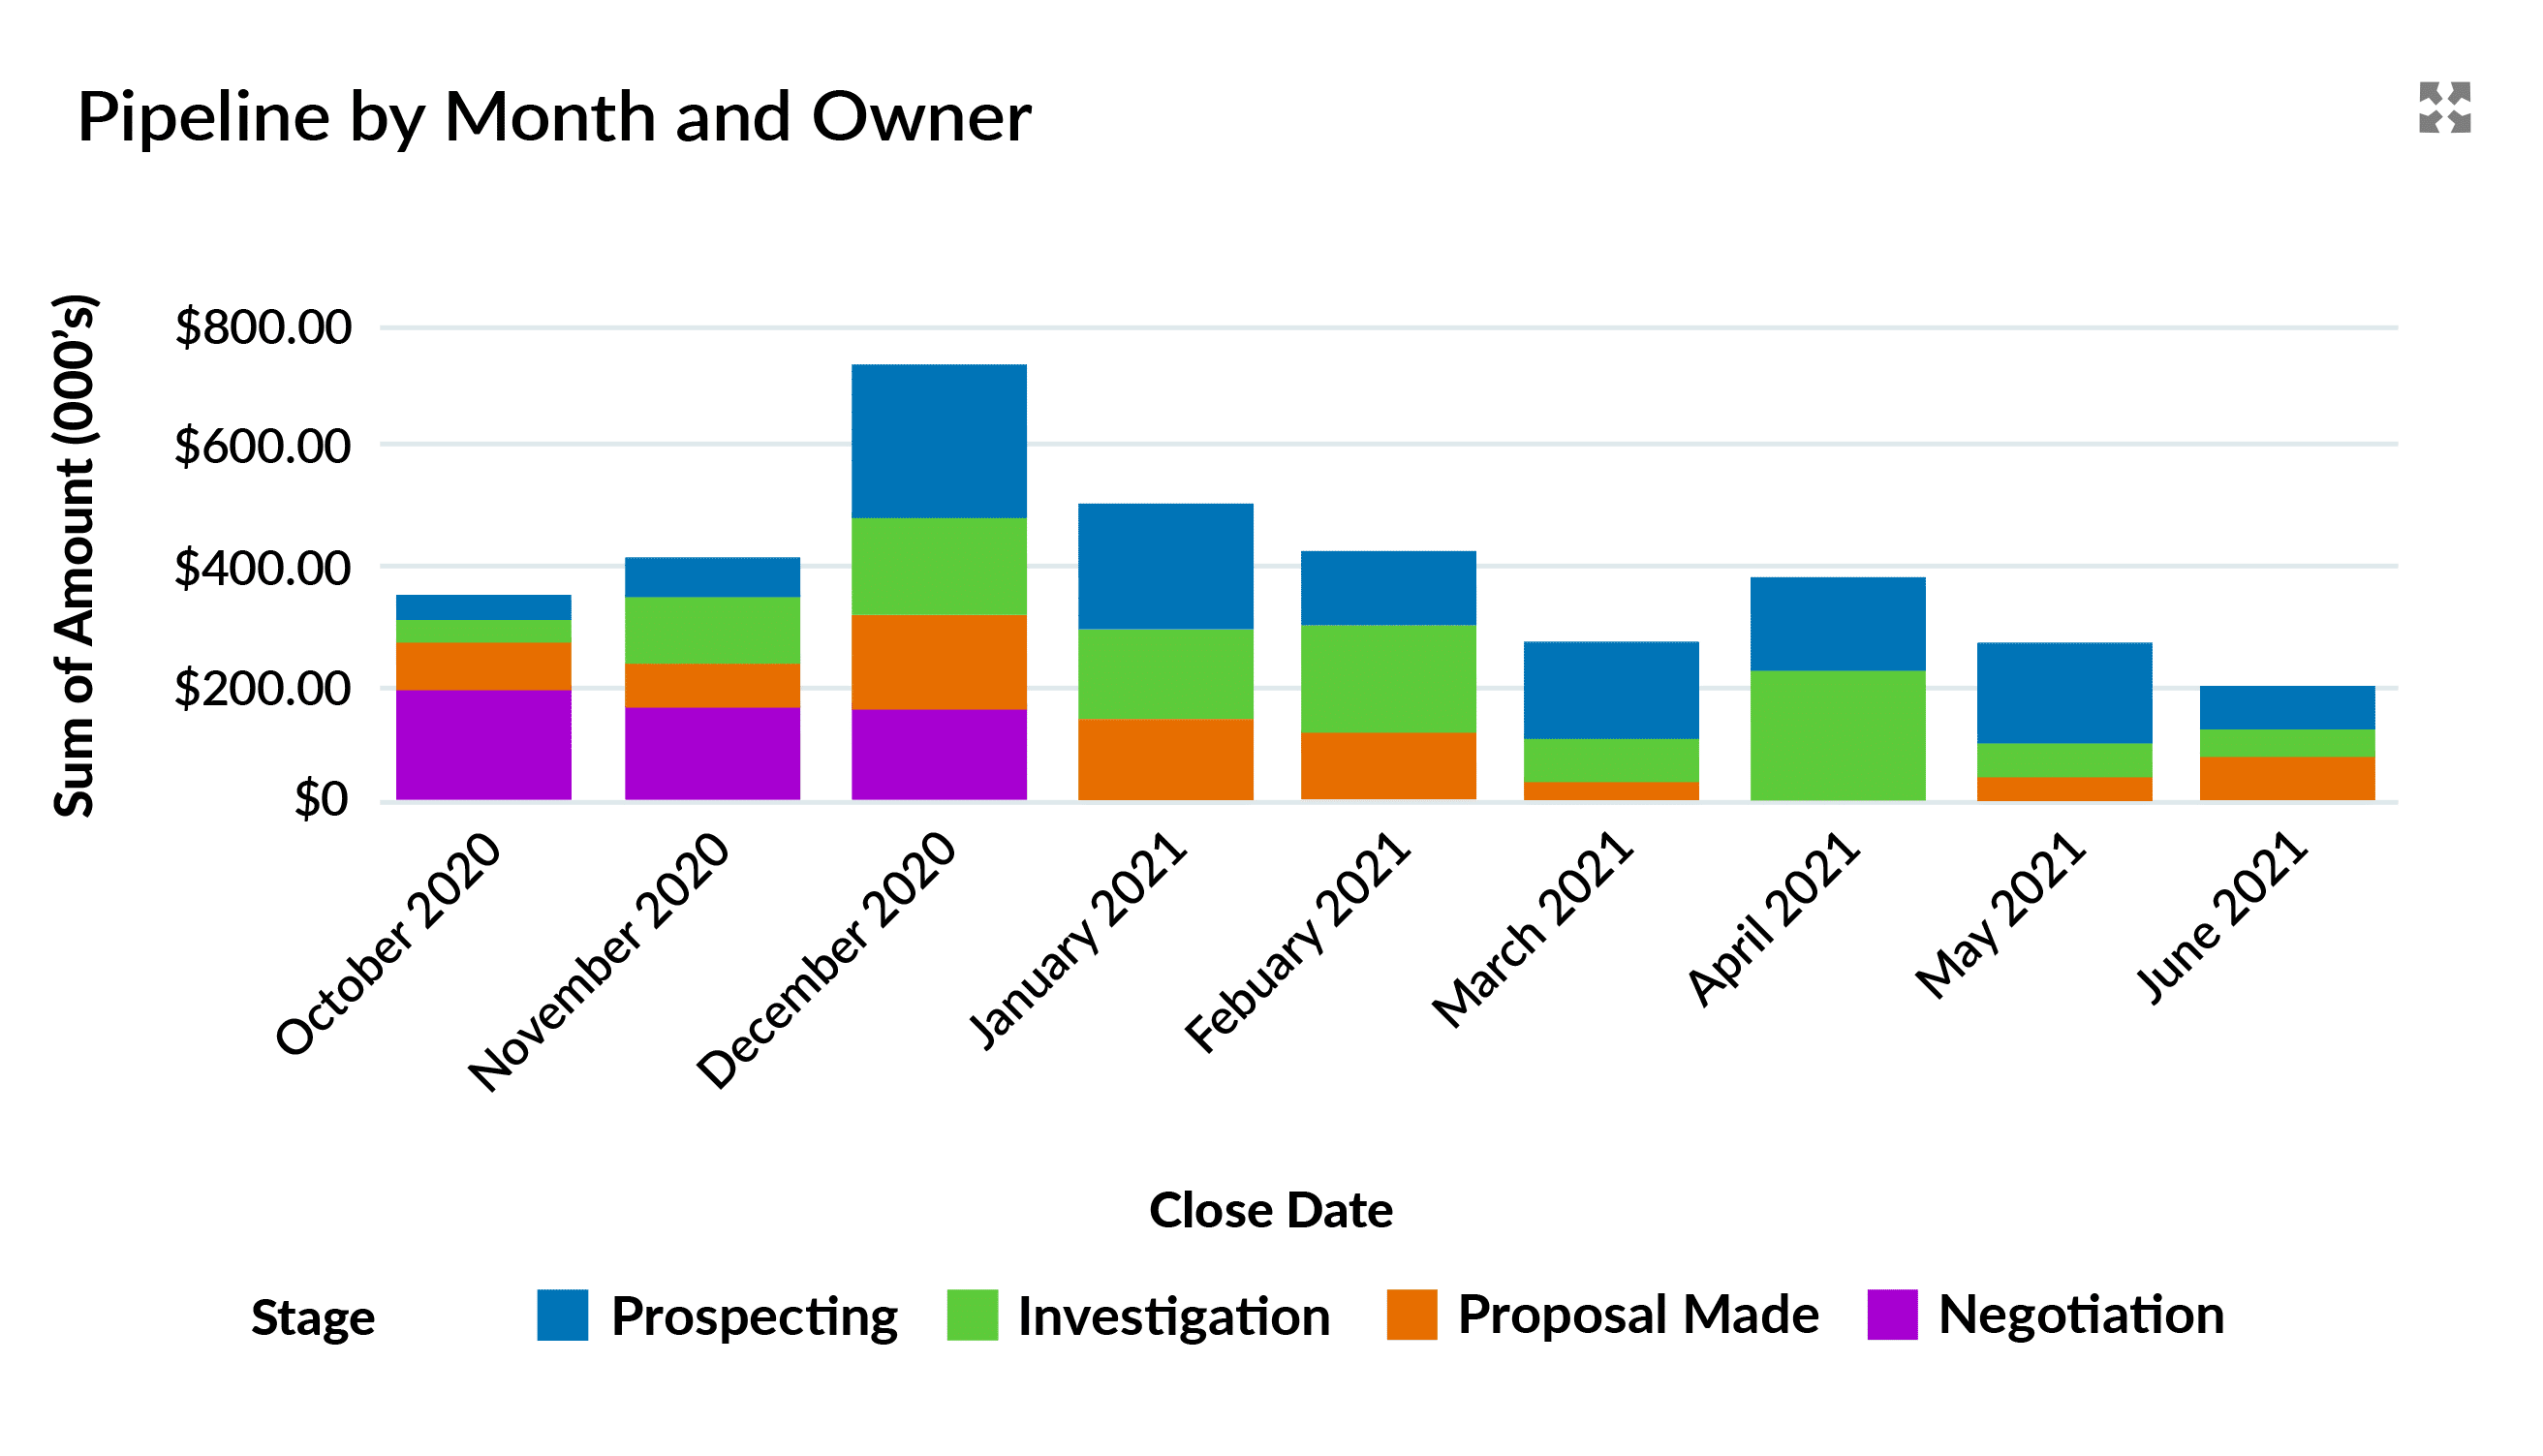 A Q4 Pipeline view by split by Month and Stage